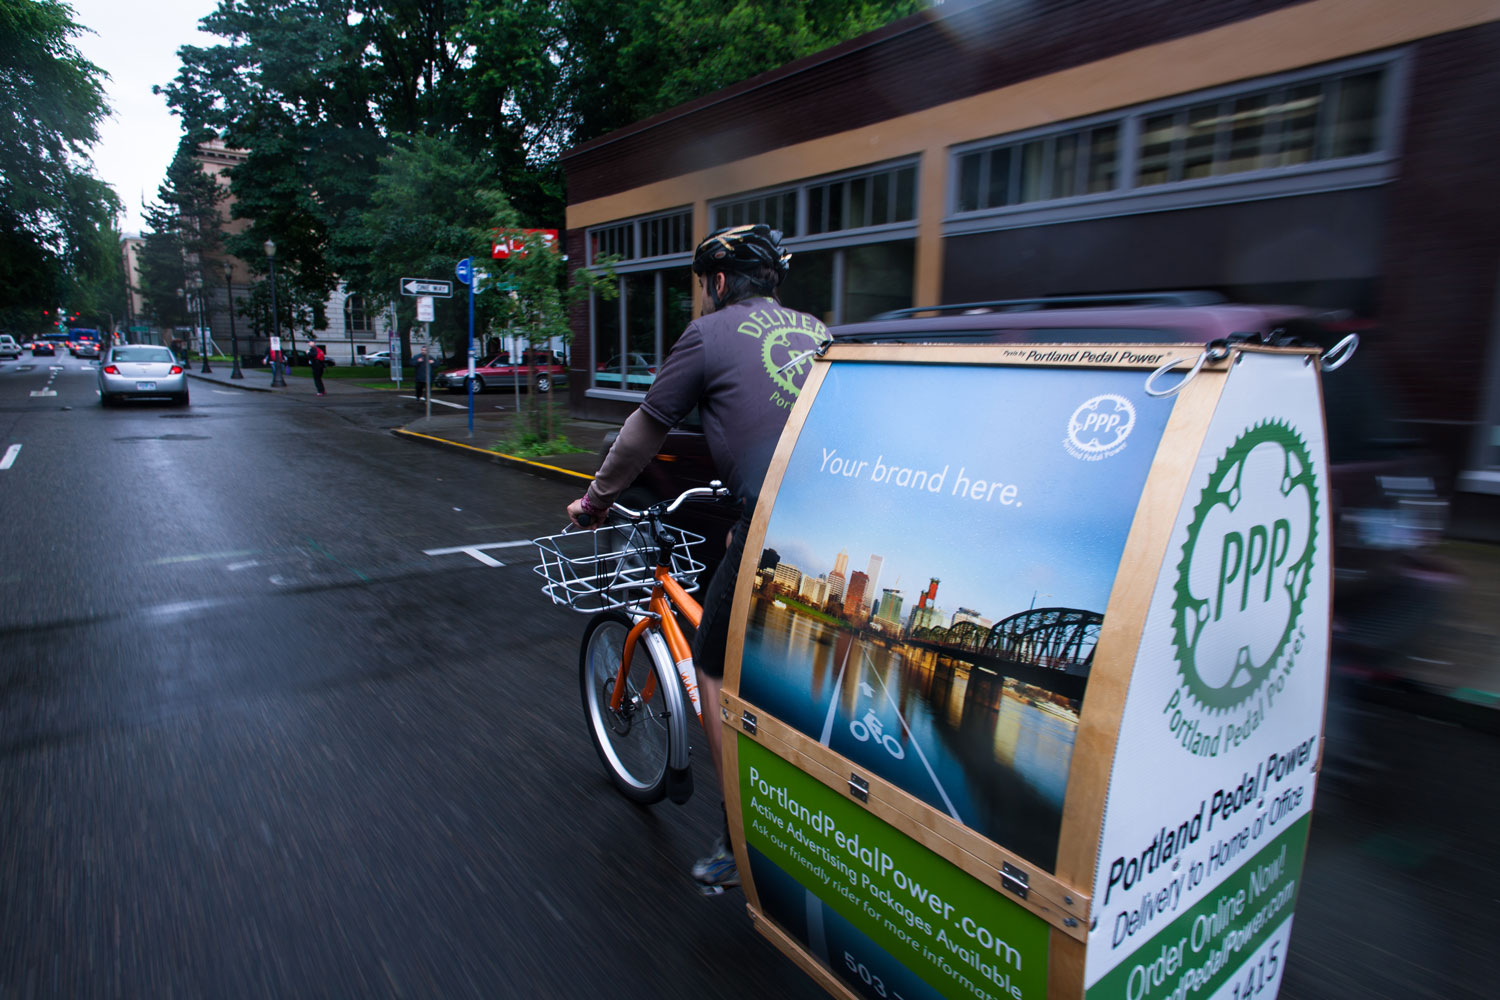 A Portland Pedal Power Rider biking through downtown Portland delivering and catering